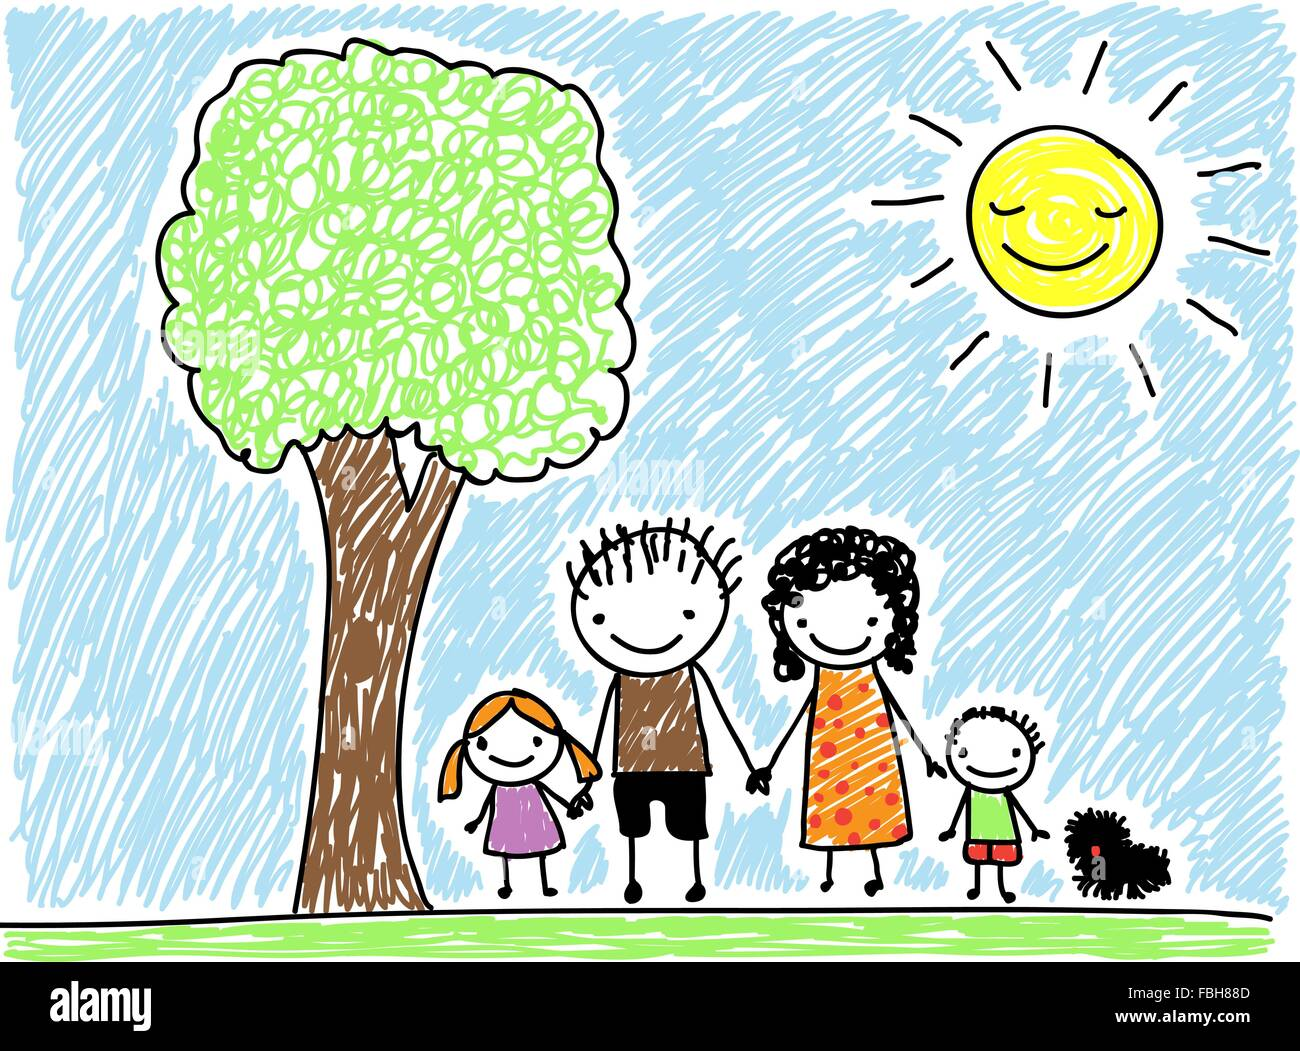 Children's drawing style family with dog - Stock Vector